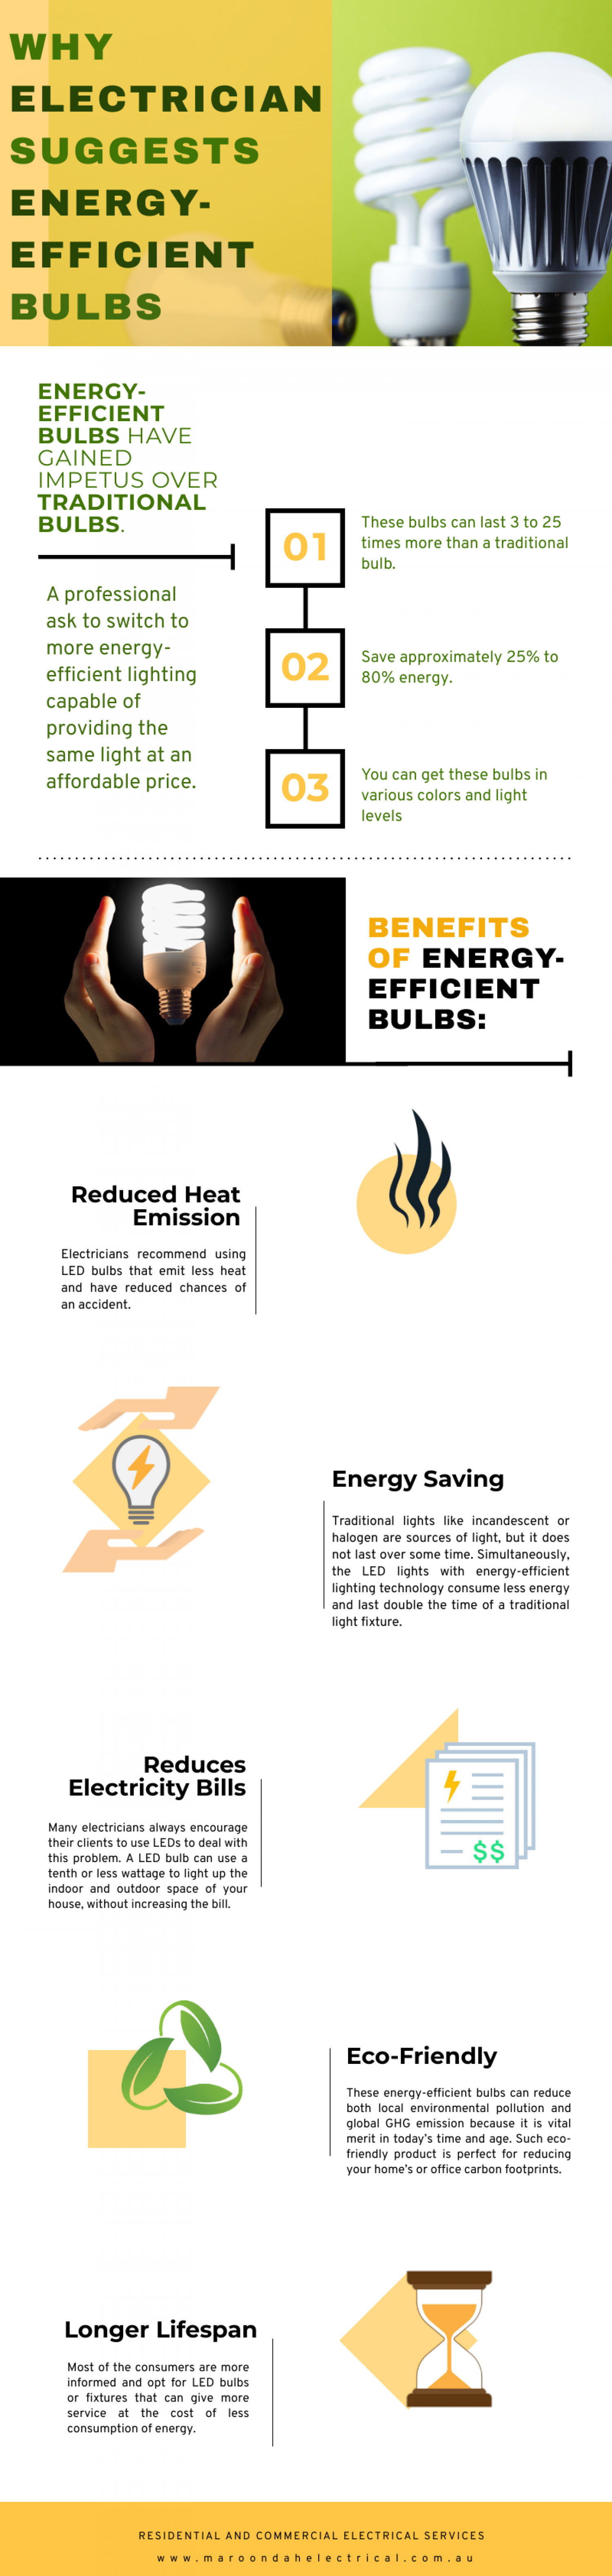 Why Electrician Suggests Energy Efficient Bulbs Infographic